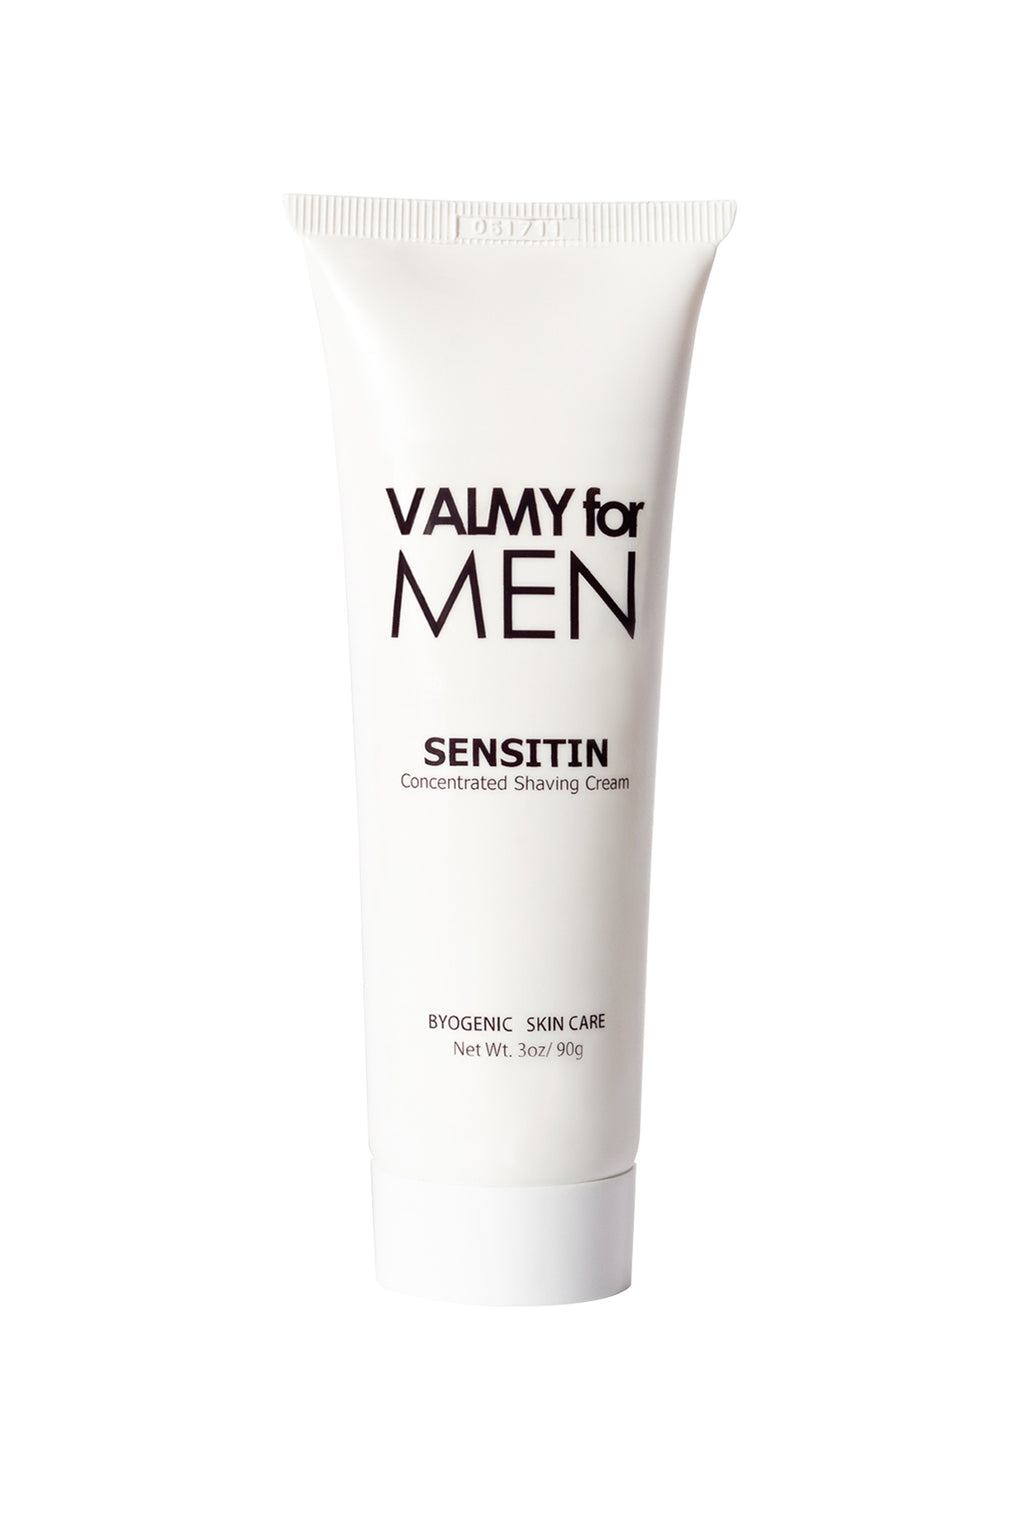 Christine Valmy Sensitin, soothing shaving cream for men.